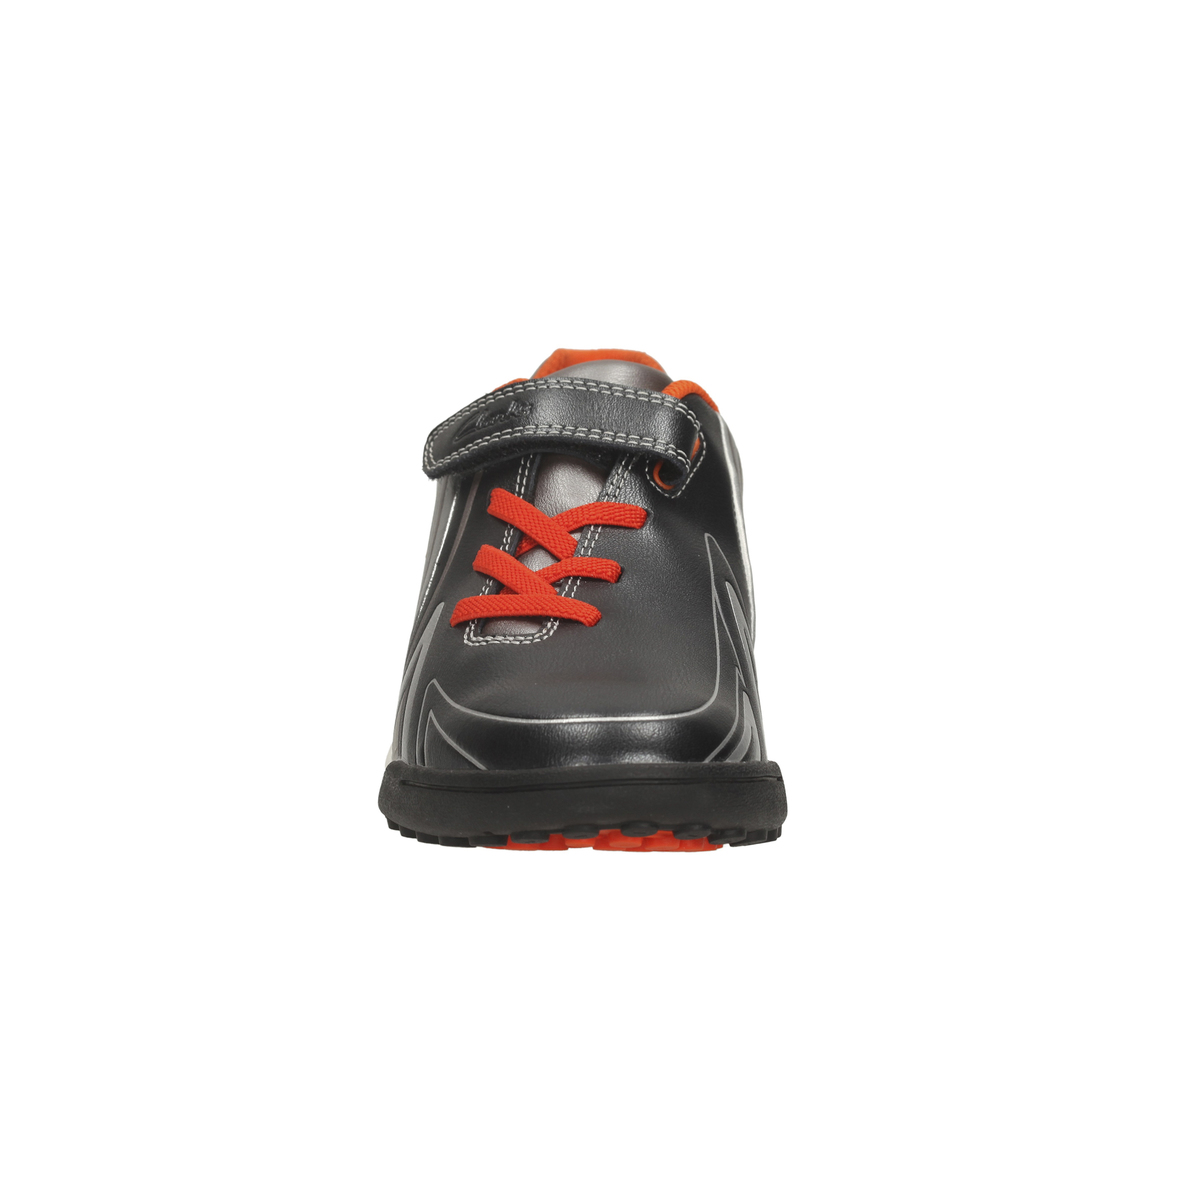 a4ad5087bb58 Clarks In Time Inf G Fit Black multi trainers